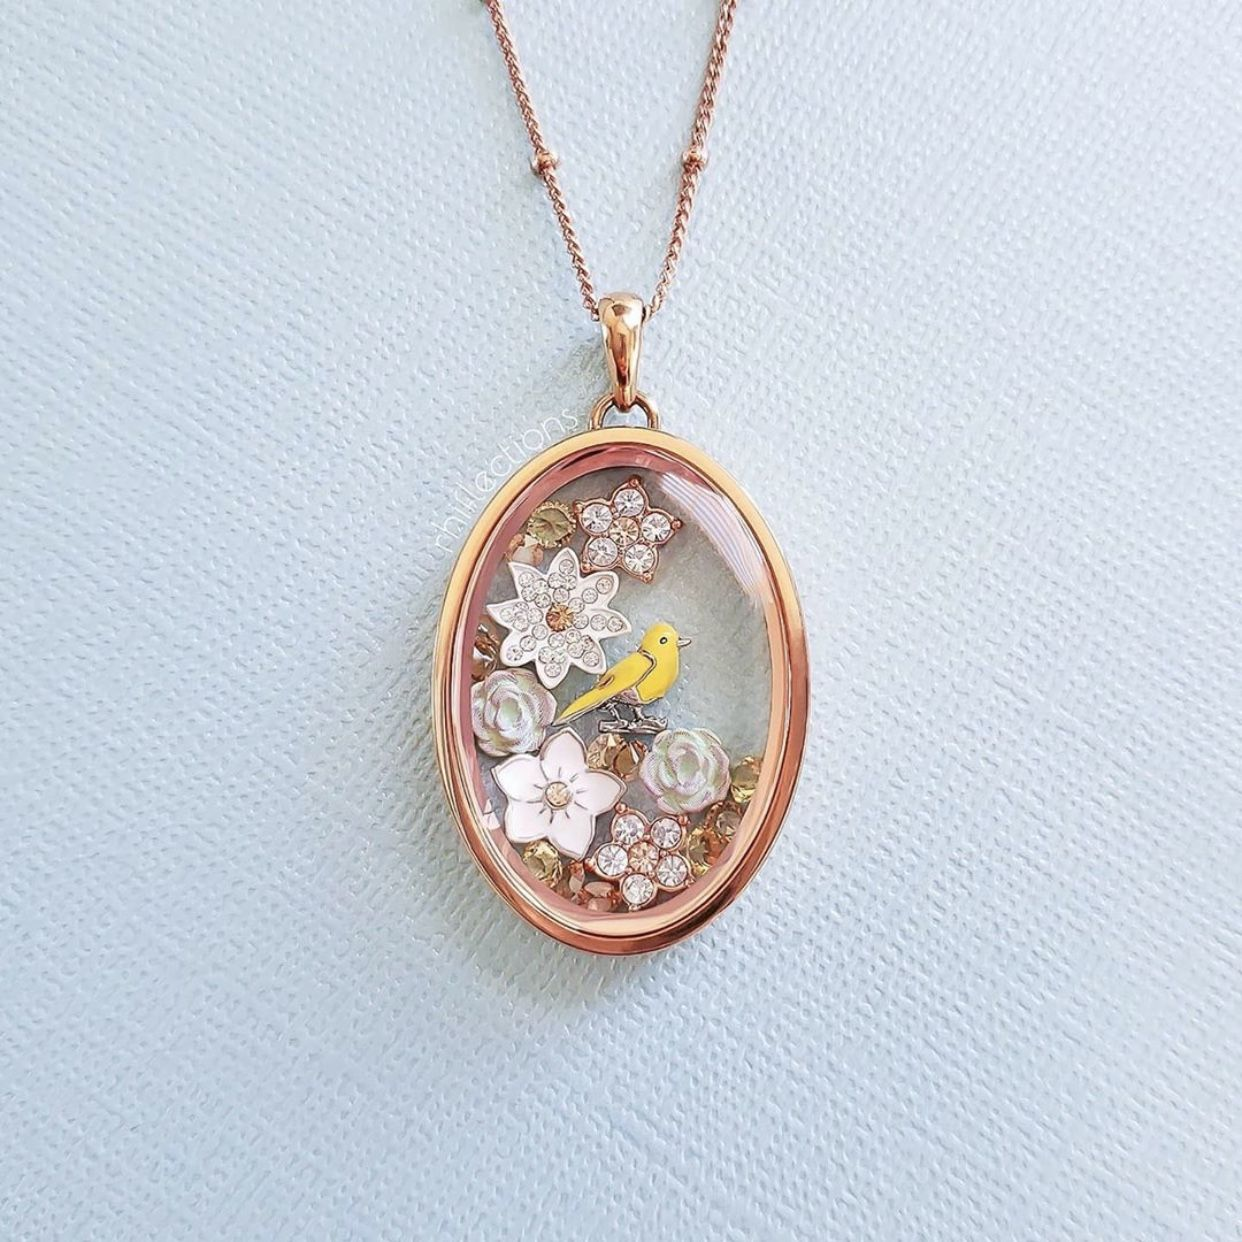 Pin on Origami Owl - What's New!